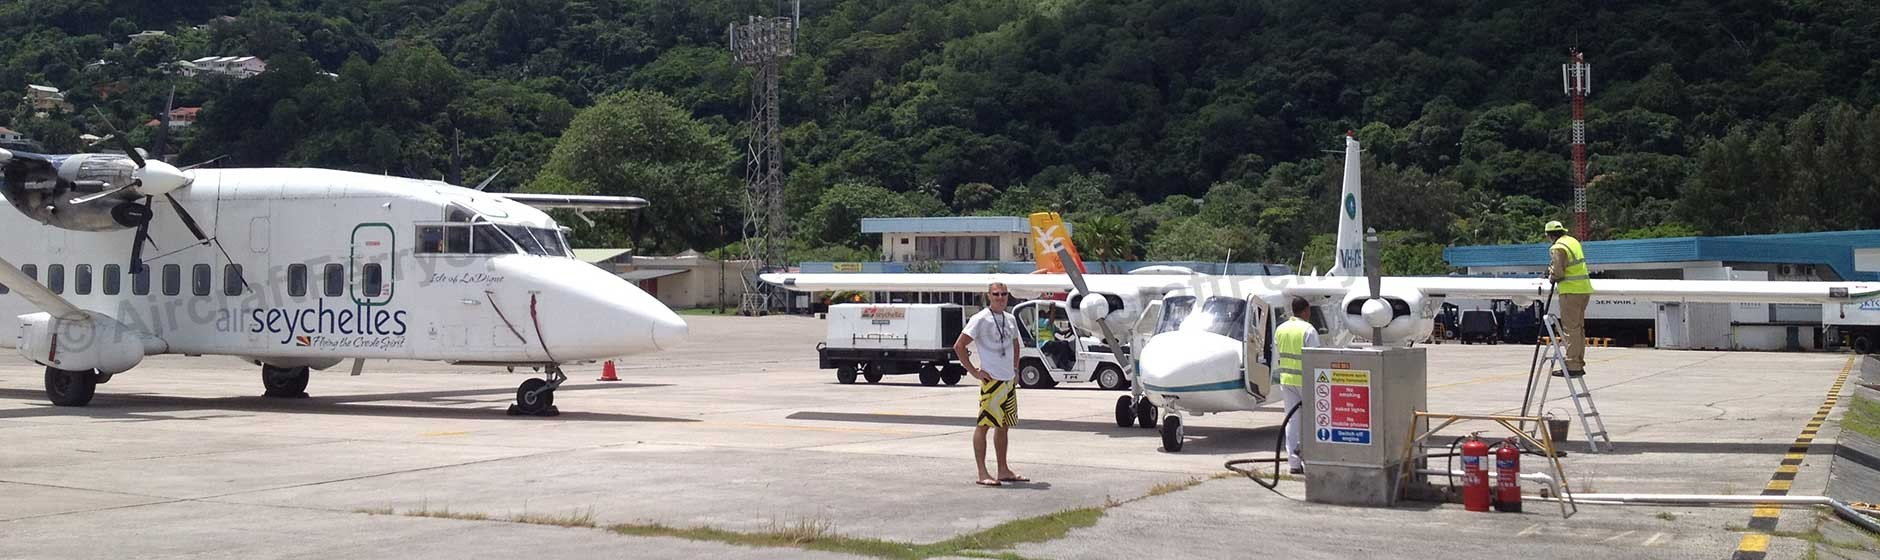 Seychelles AVGAS Ferry Flight